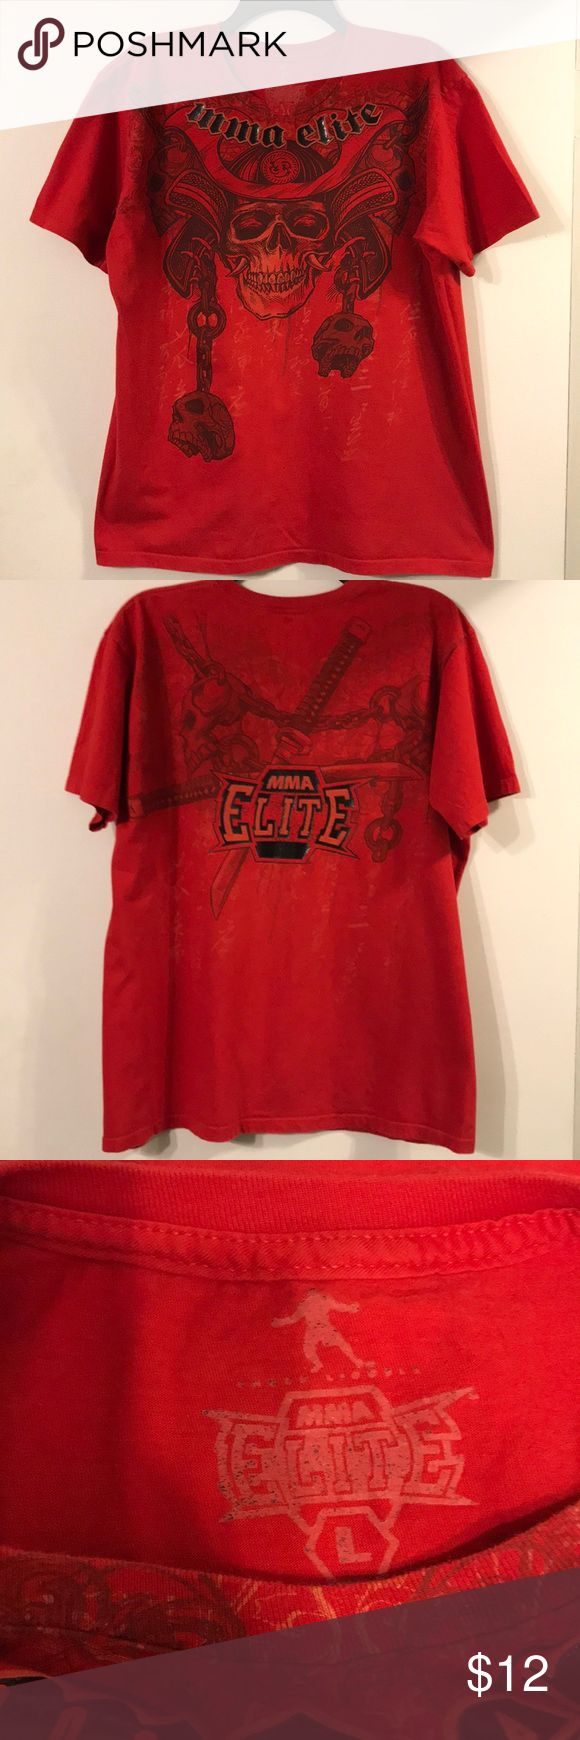 MENS MMA T-SHIRT Red MMA ELITE t-shirt with samurai skull on front and samurai swords on the back. Measurements: 27in long and 22in across chest. EUC MMA ELITE Shirts Tees - Short Sleeve